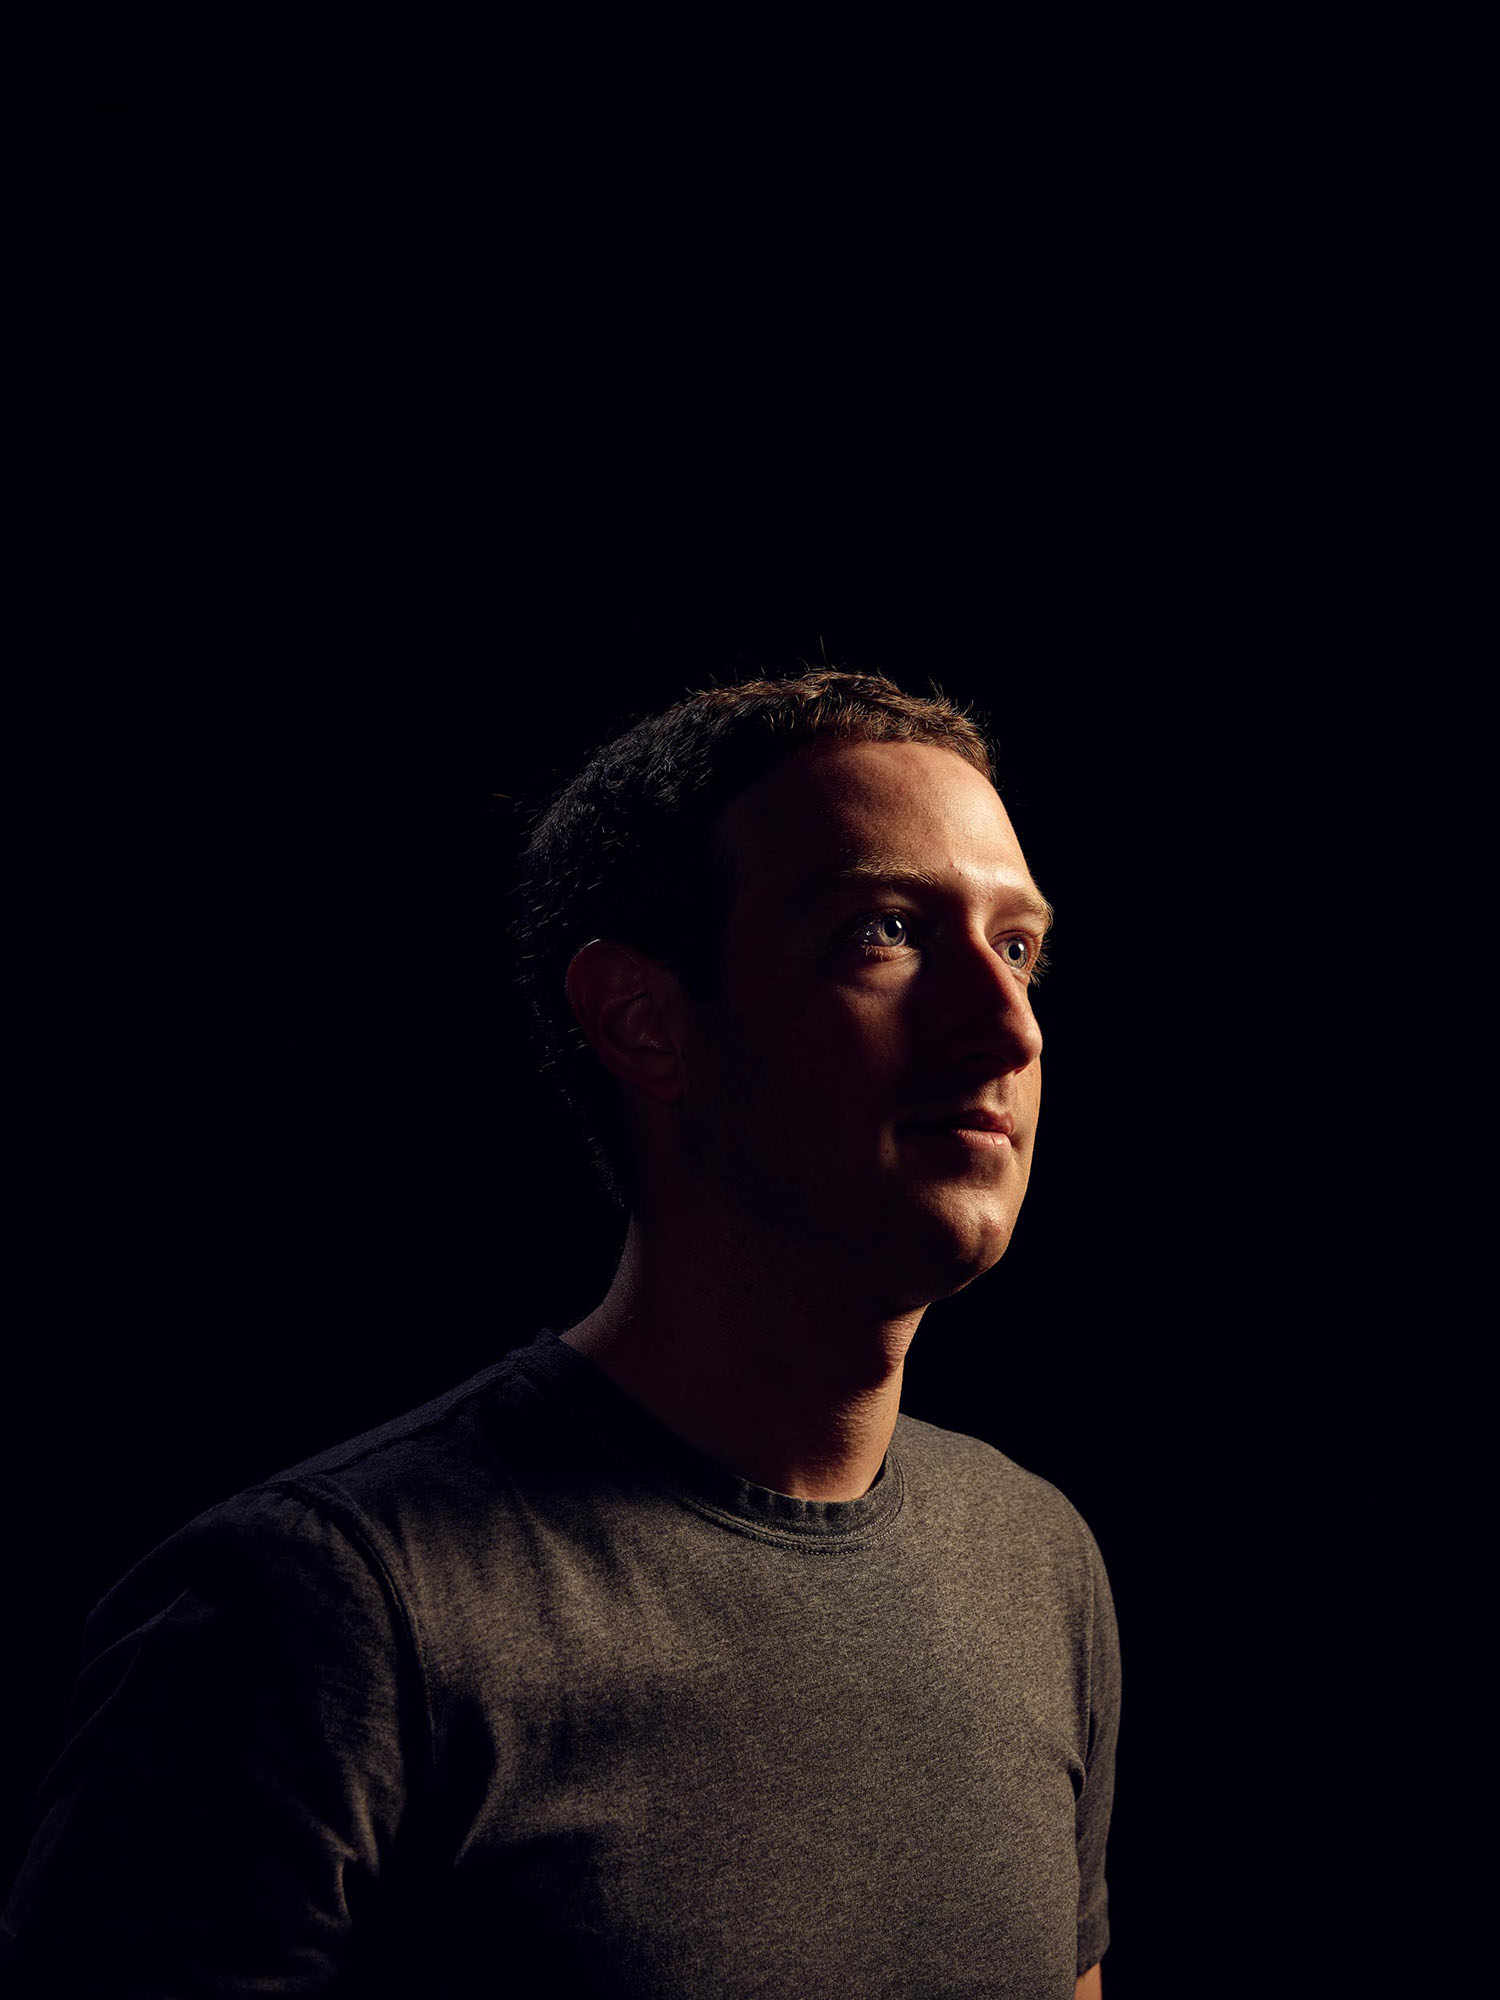 Mark Zuckerberg, CEO of Facebook, Menlo Park, California, 2017